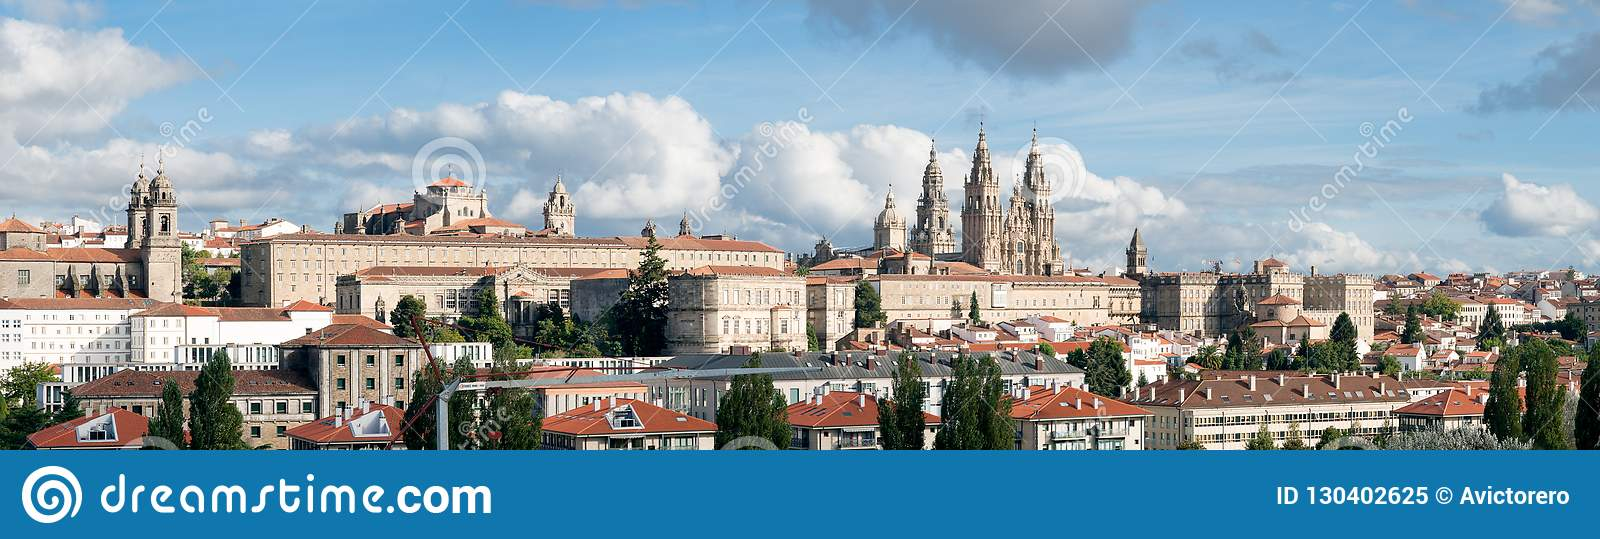 santiago de compostela wide panoramic view cathedral with the new